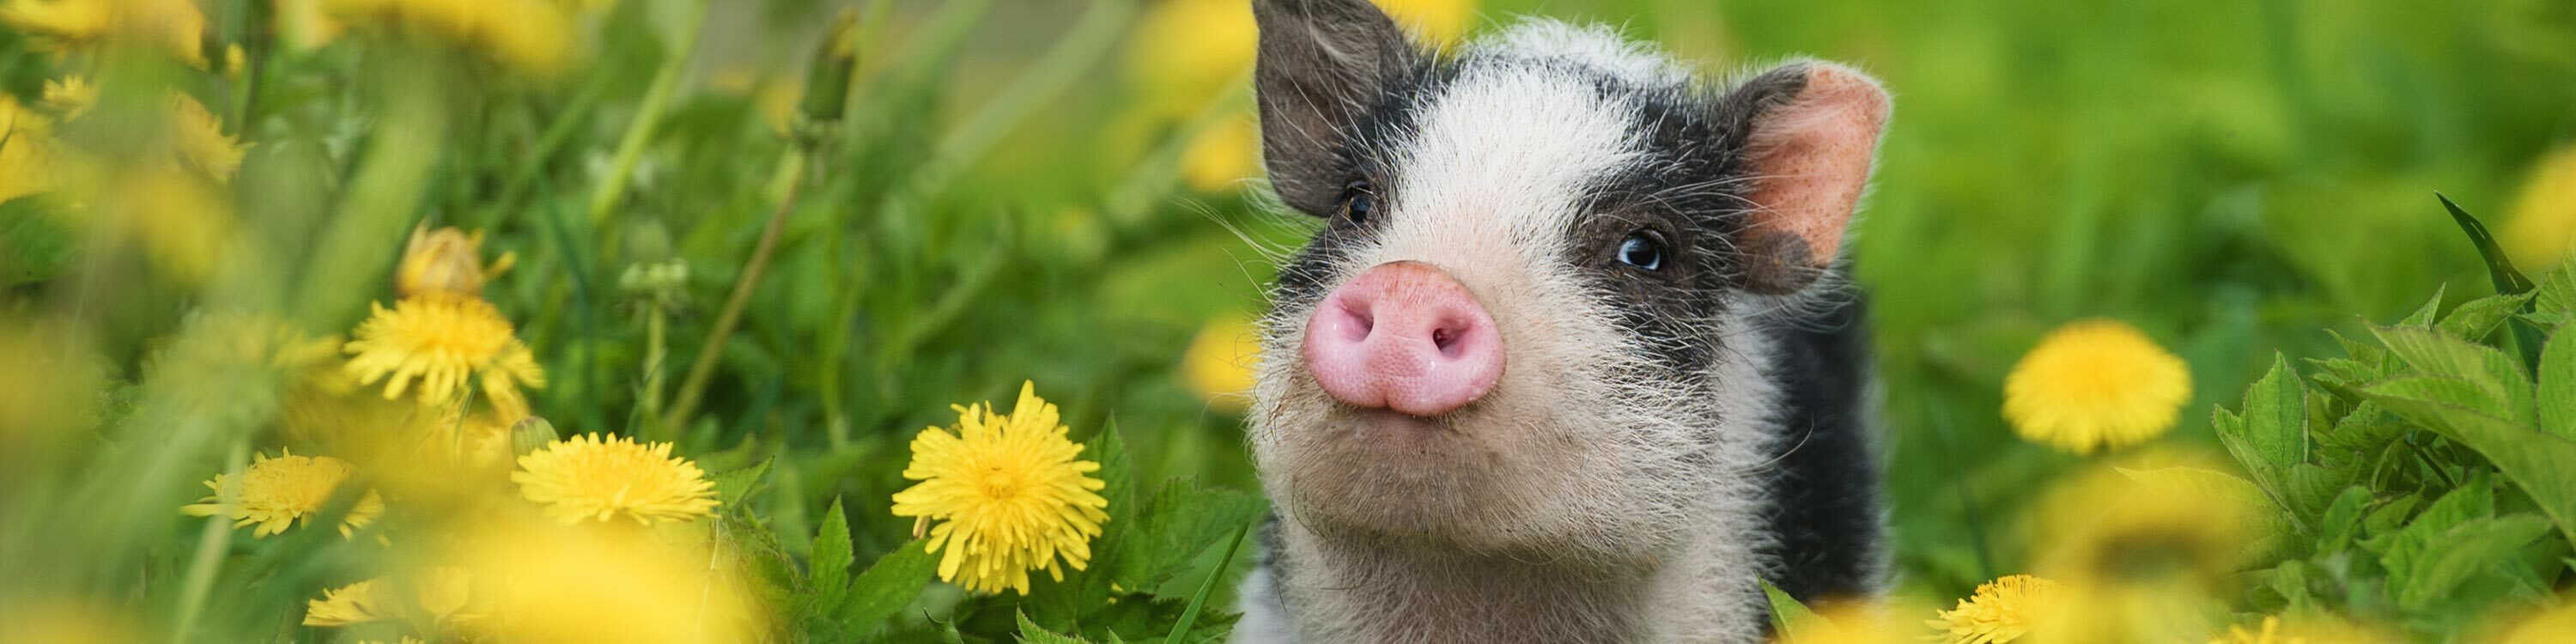 spotted pig in a field of dandelions